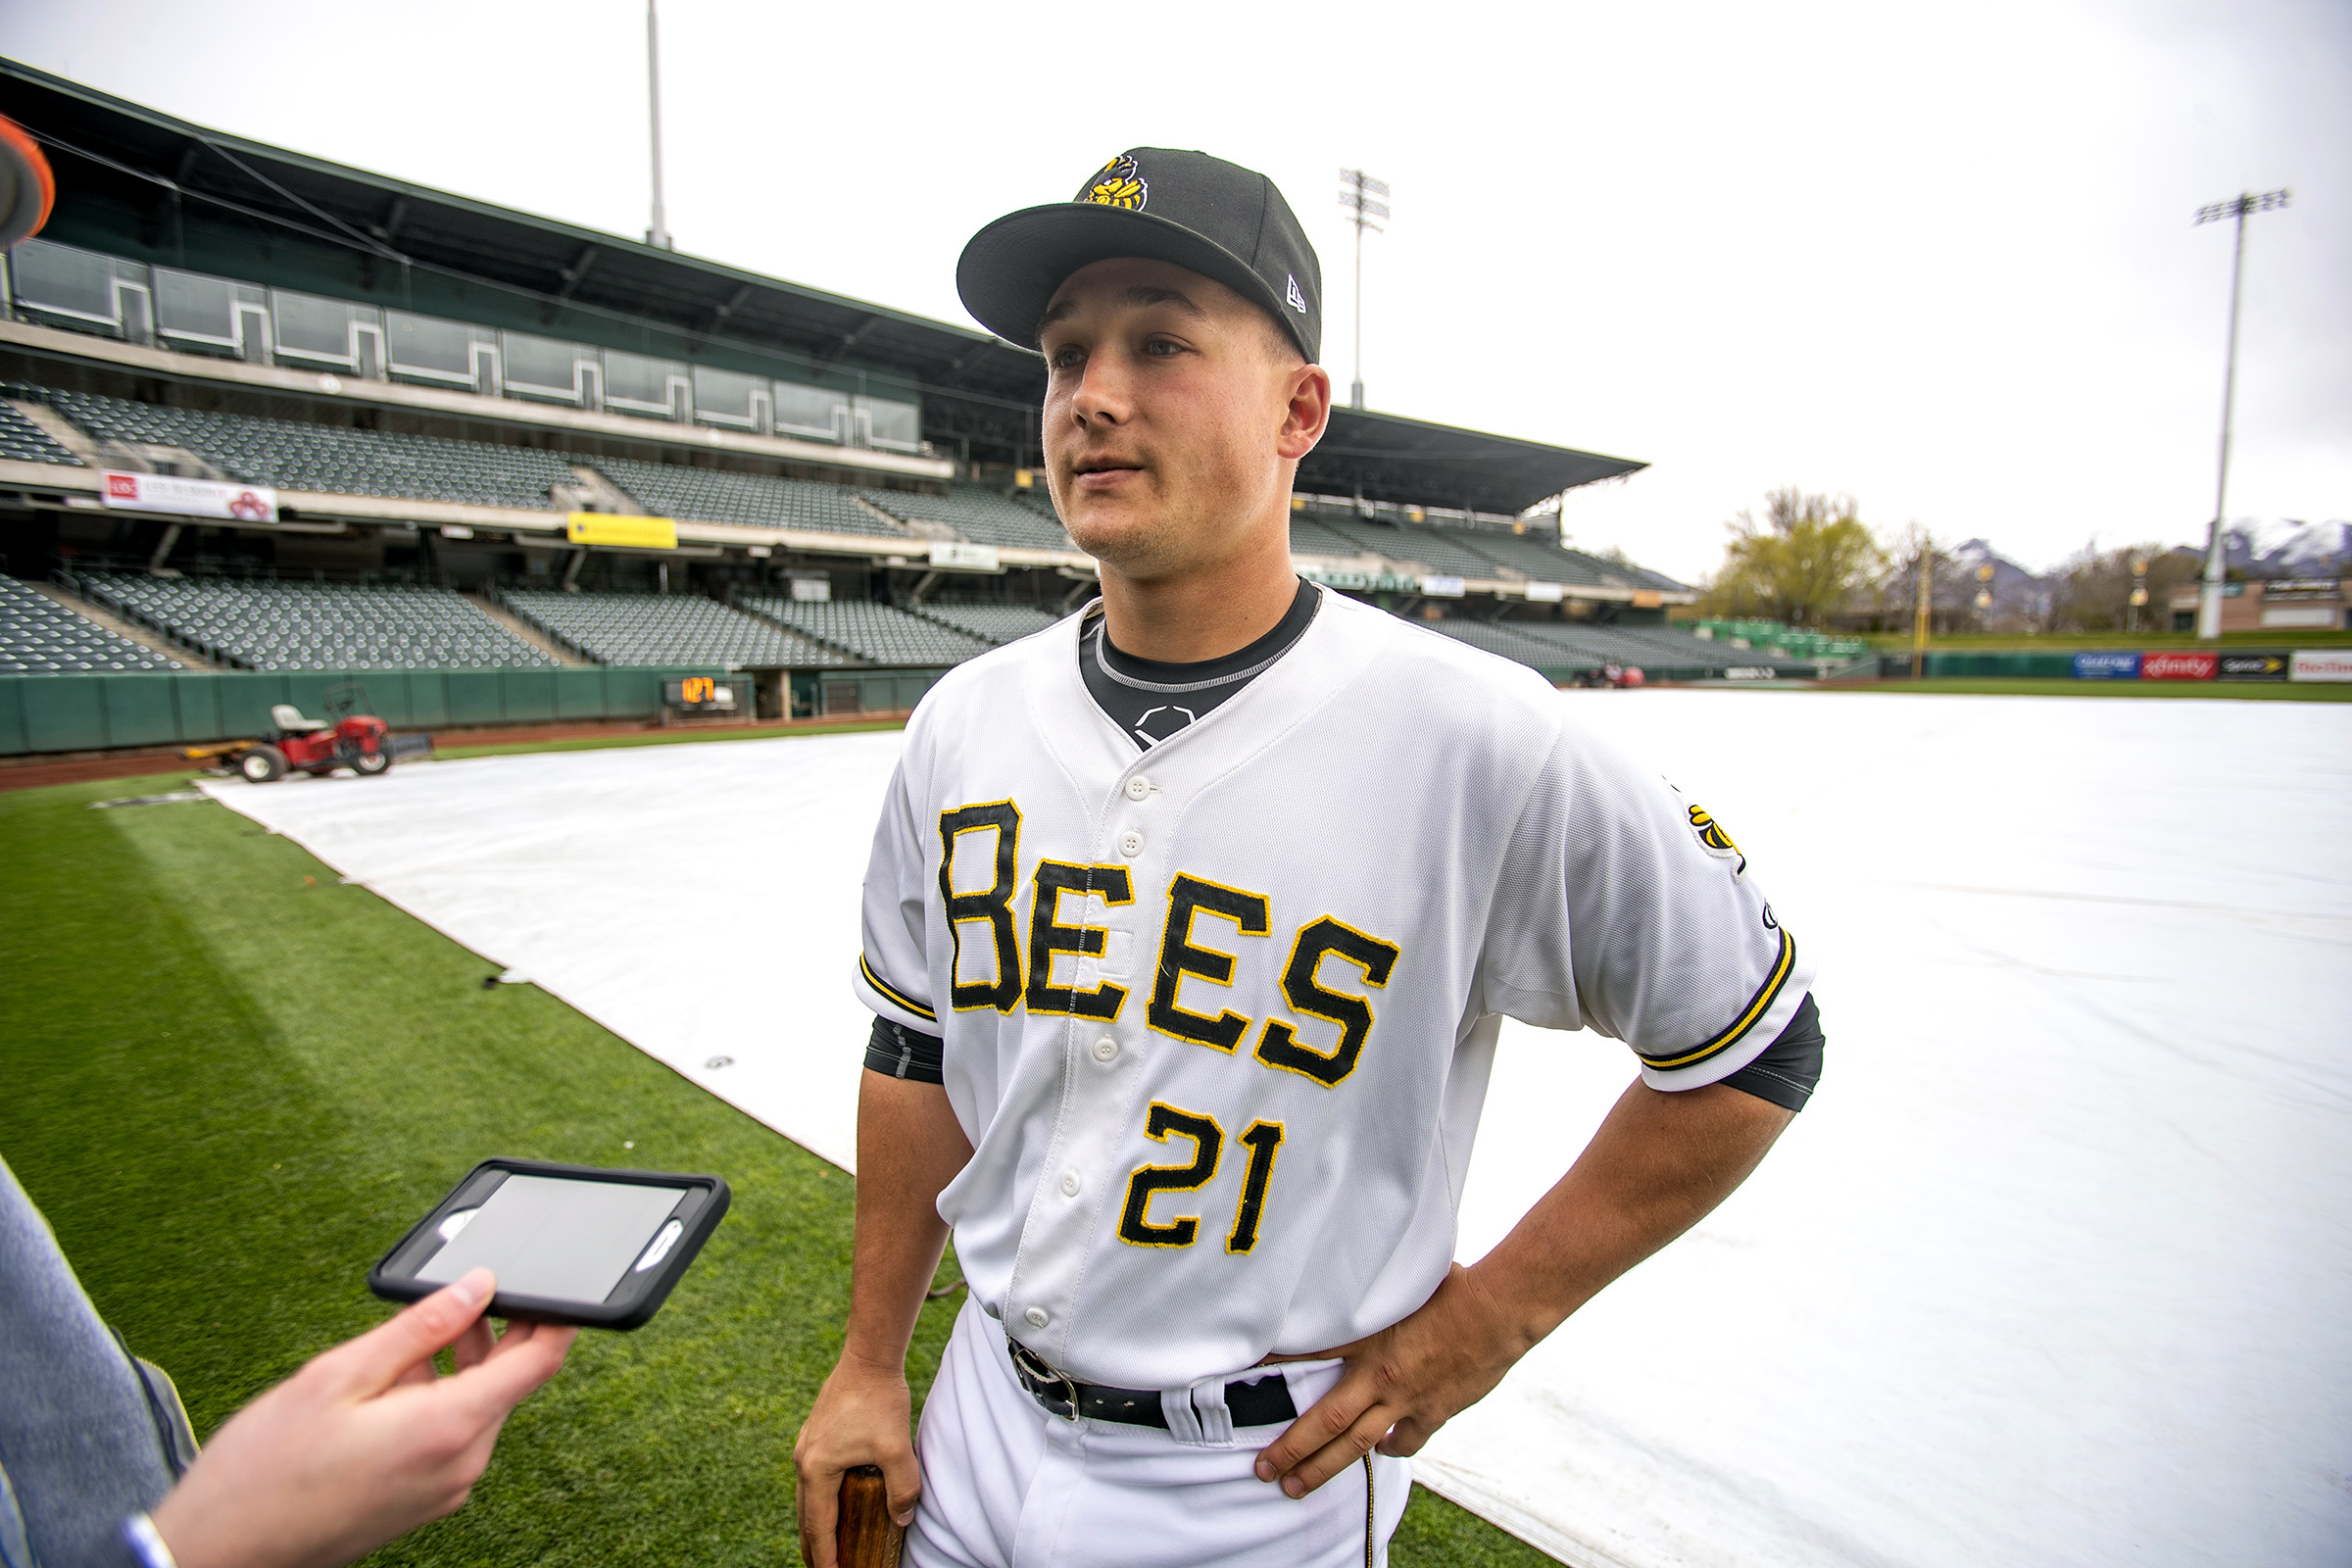 Bees' Matt Thaiss talks with media members as the Salt Lake Bees hold their media day at Smith's Ballpark on Tuesday, April 2, 2019.